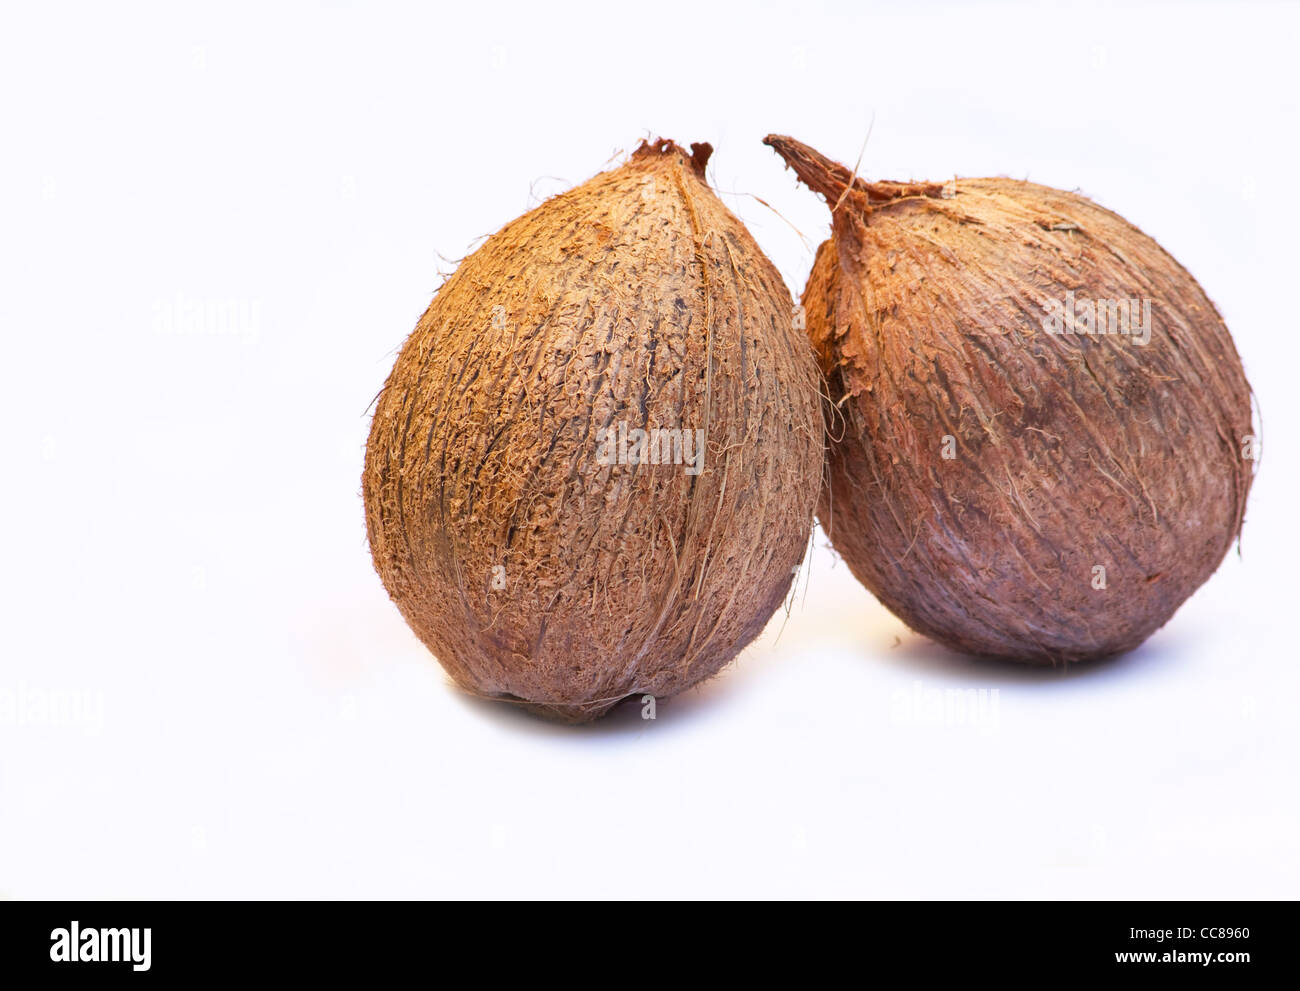 Close-up of two coconuts on white background - Stock Image